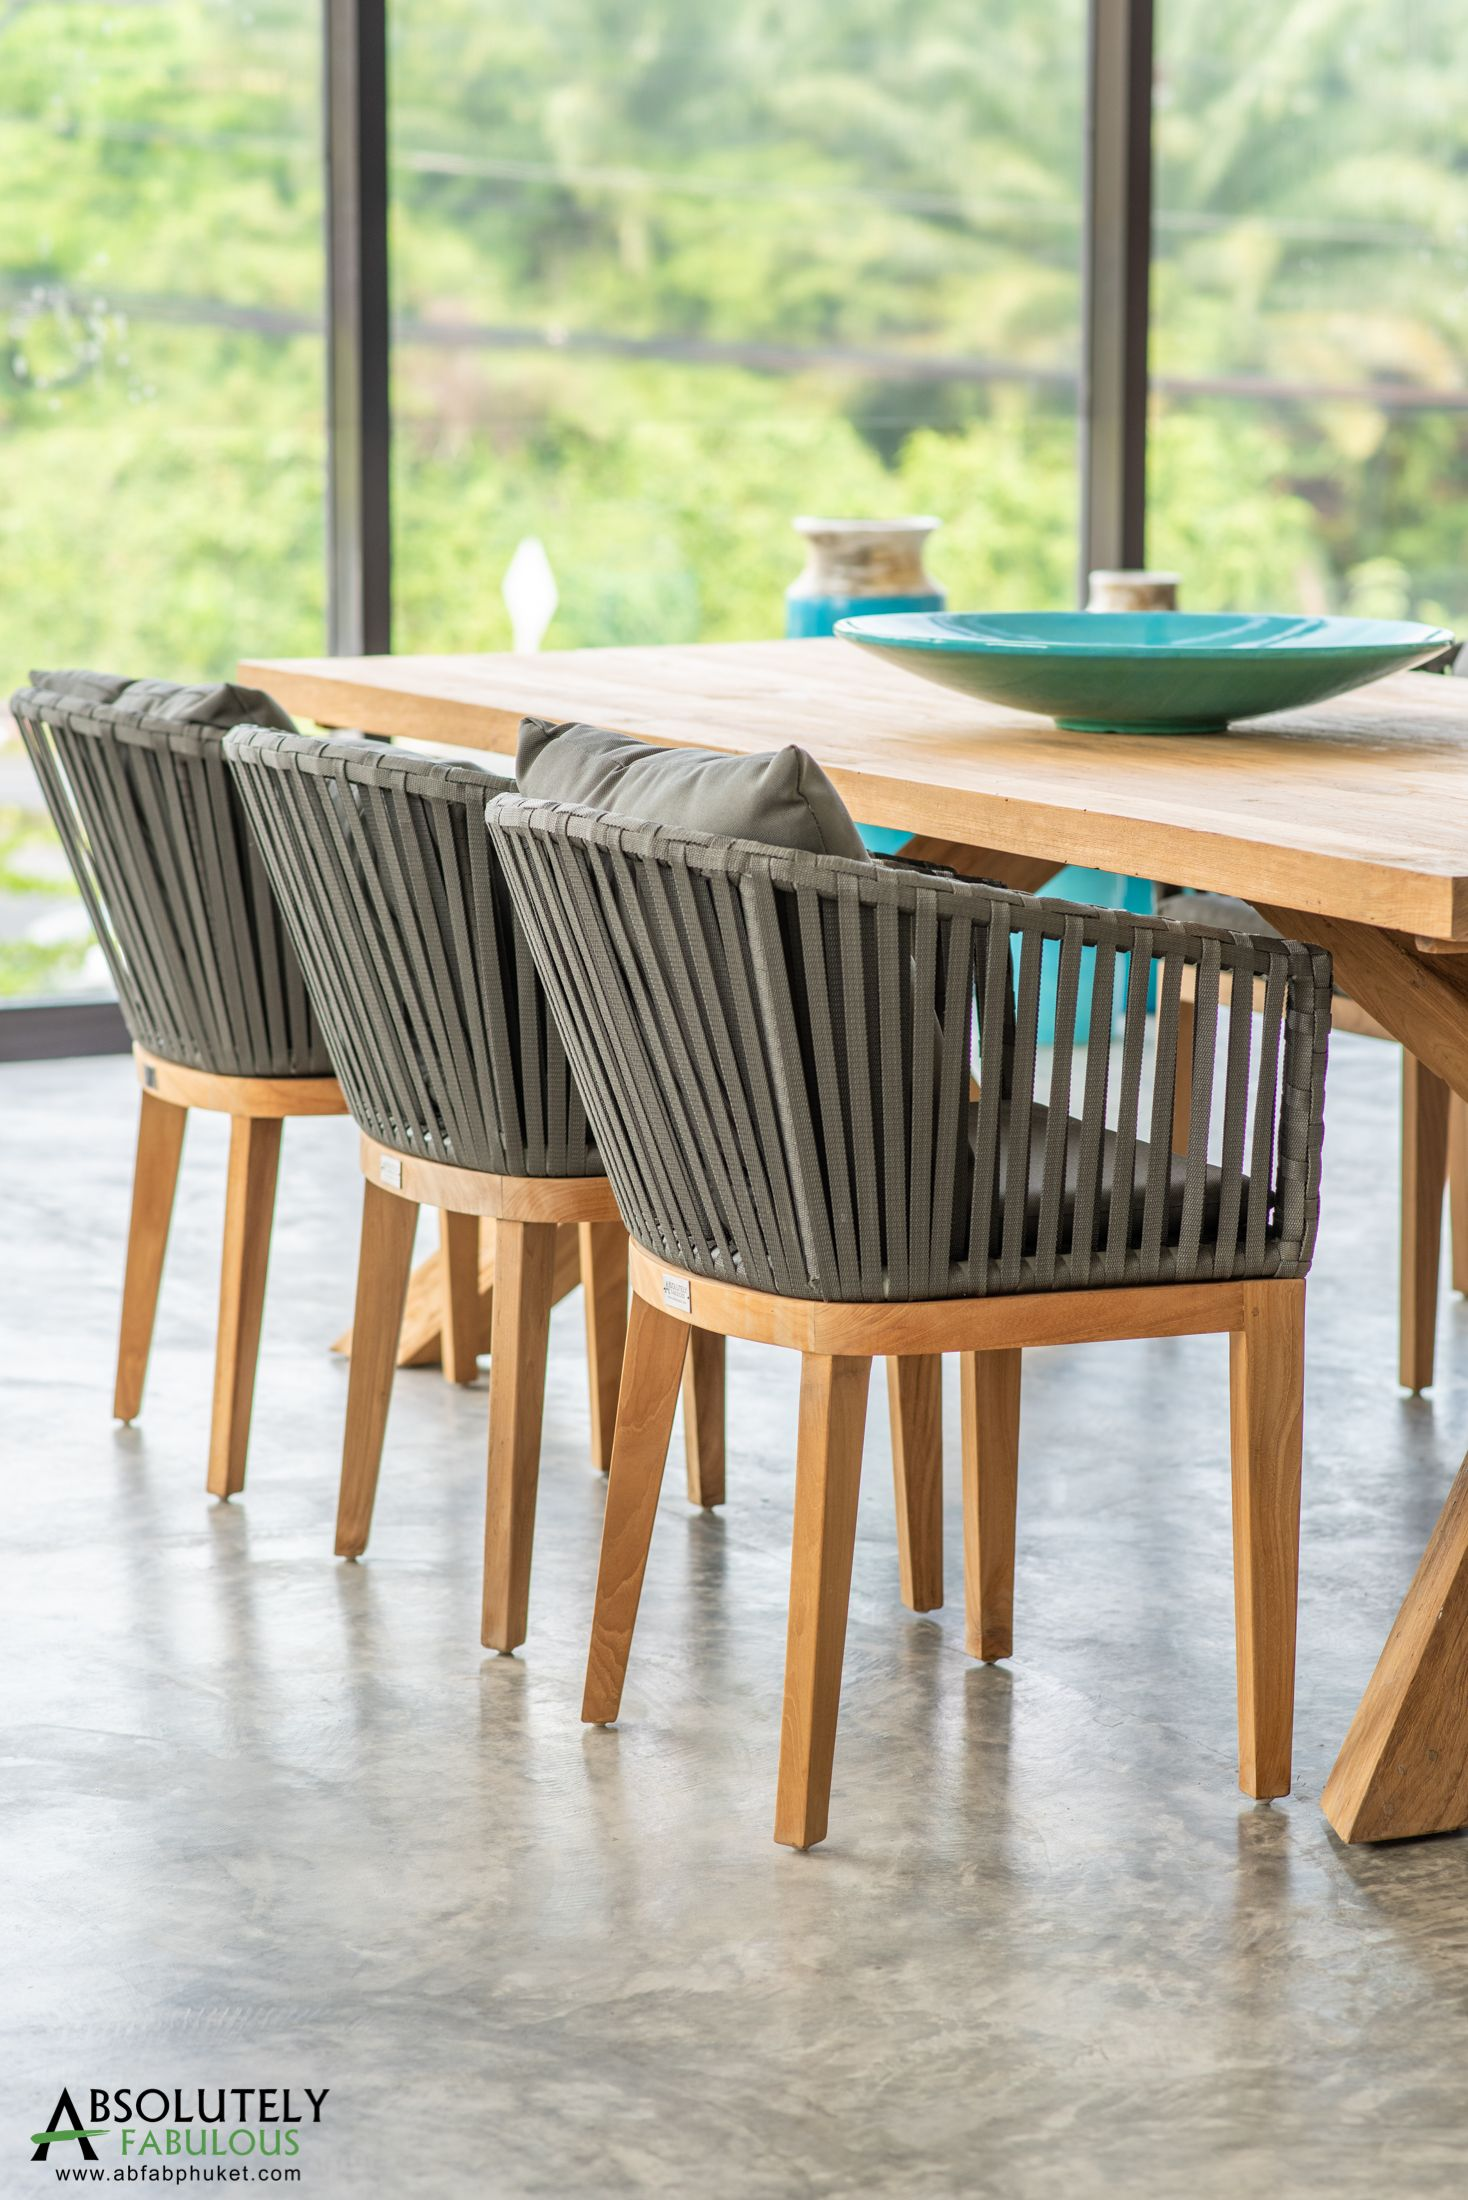 We Have Used Refurbished Teak Wood To Make These Dining Chairs Teak Wood Is Strong And Requires Very Little Maintenance Making It The Perfect Material For Fur